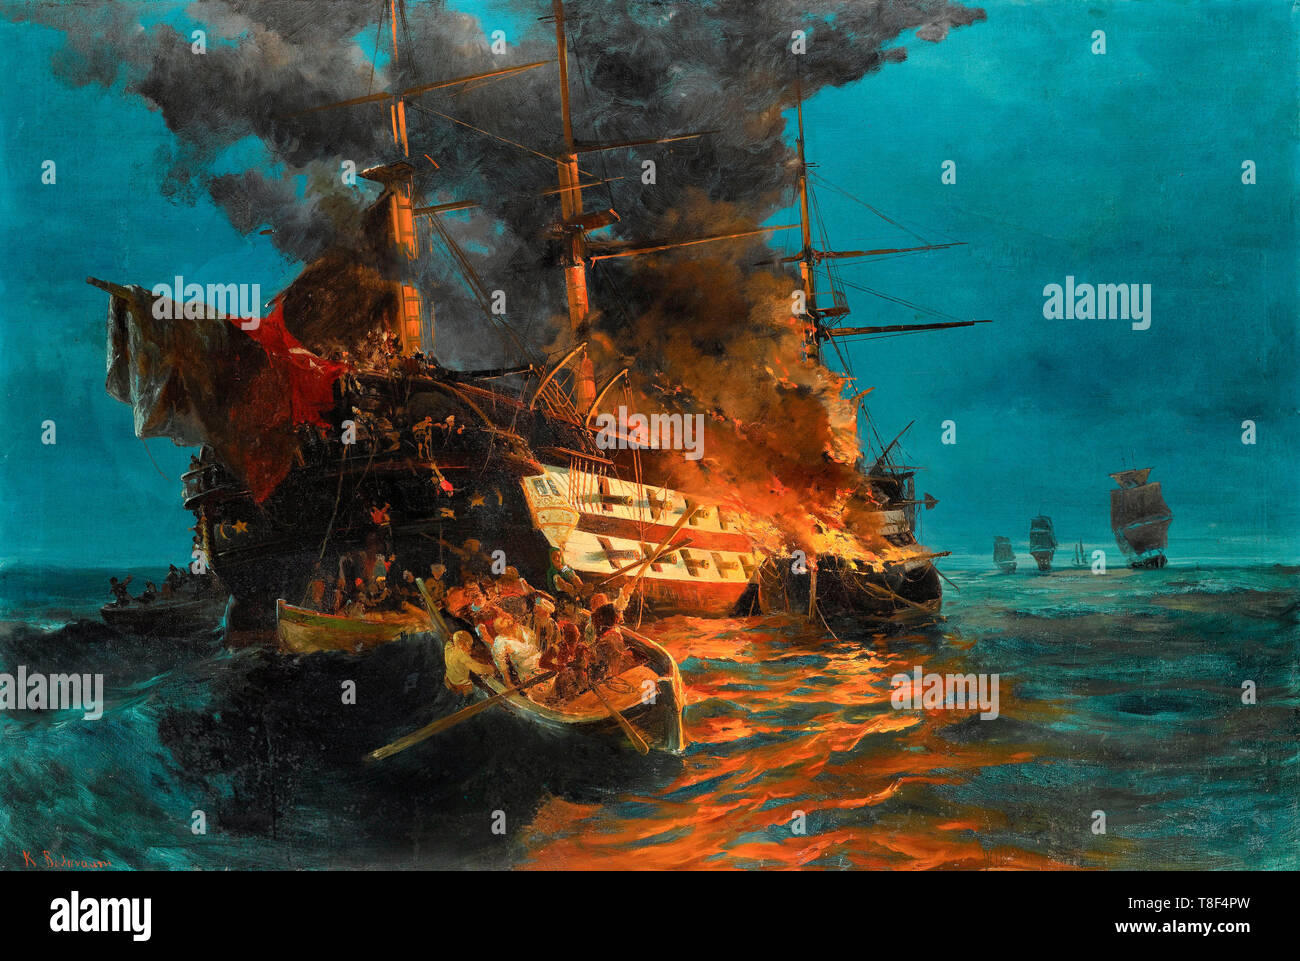 The burning of a Turkish frigate during the Greek War of Independence, 1821 - Konstantinos Volanakis - Stock Image